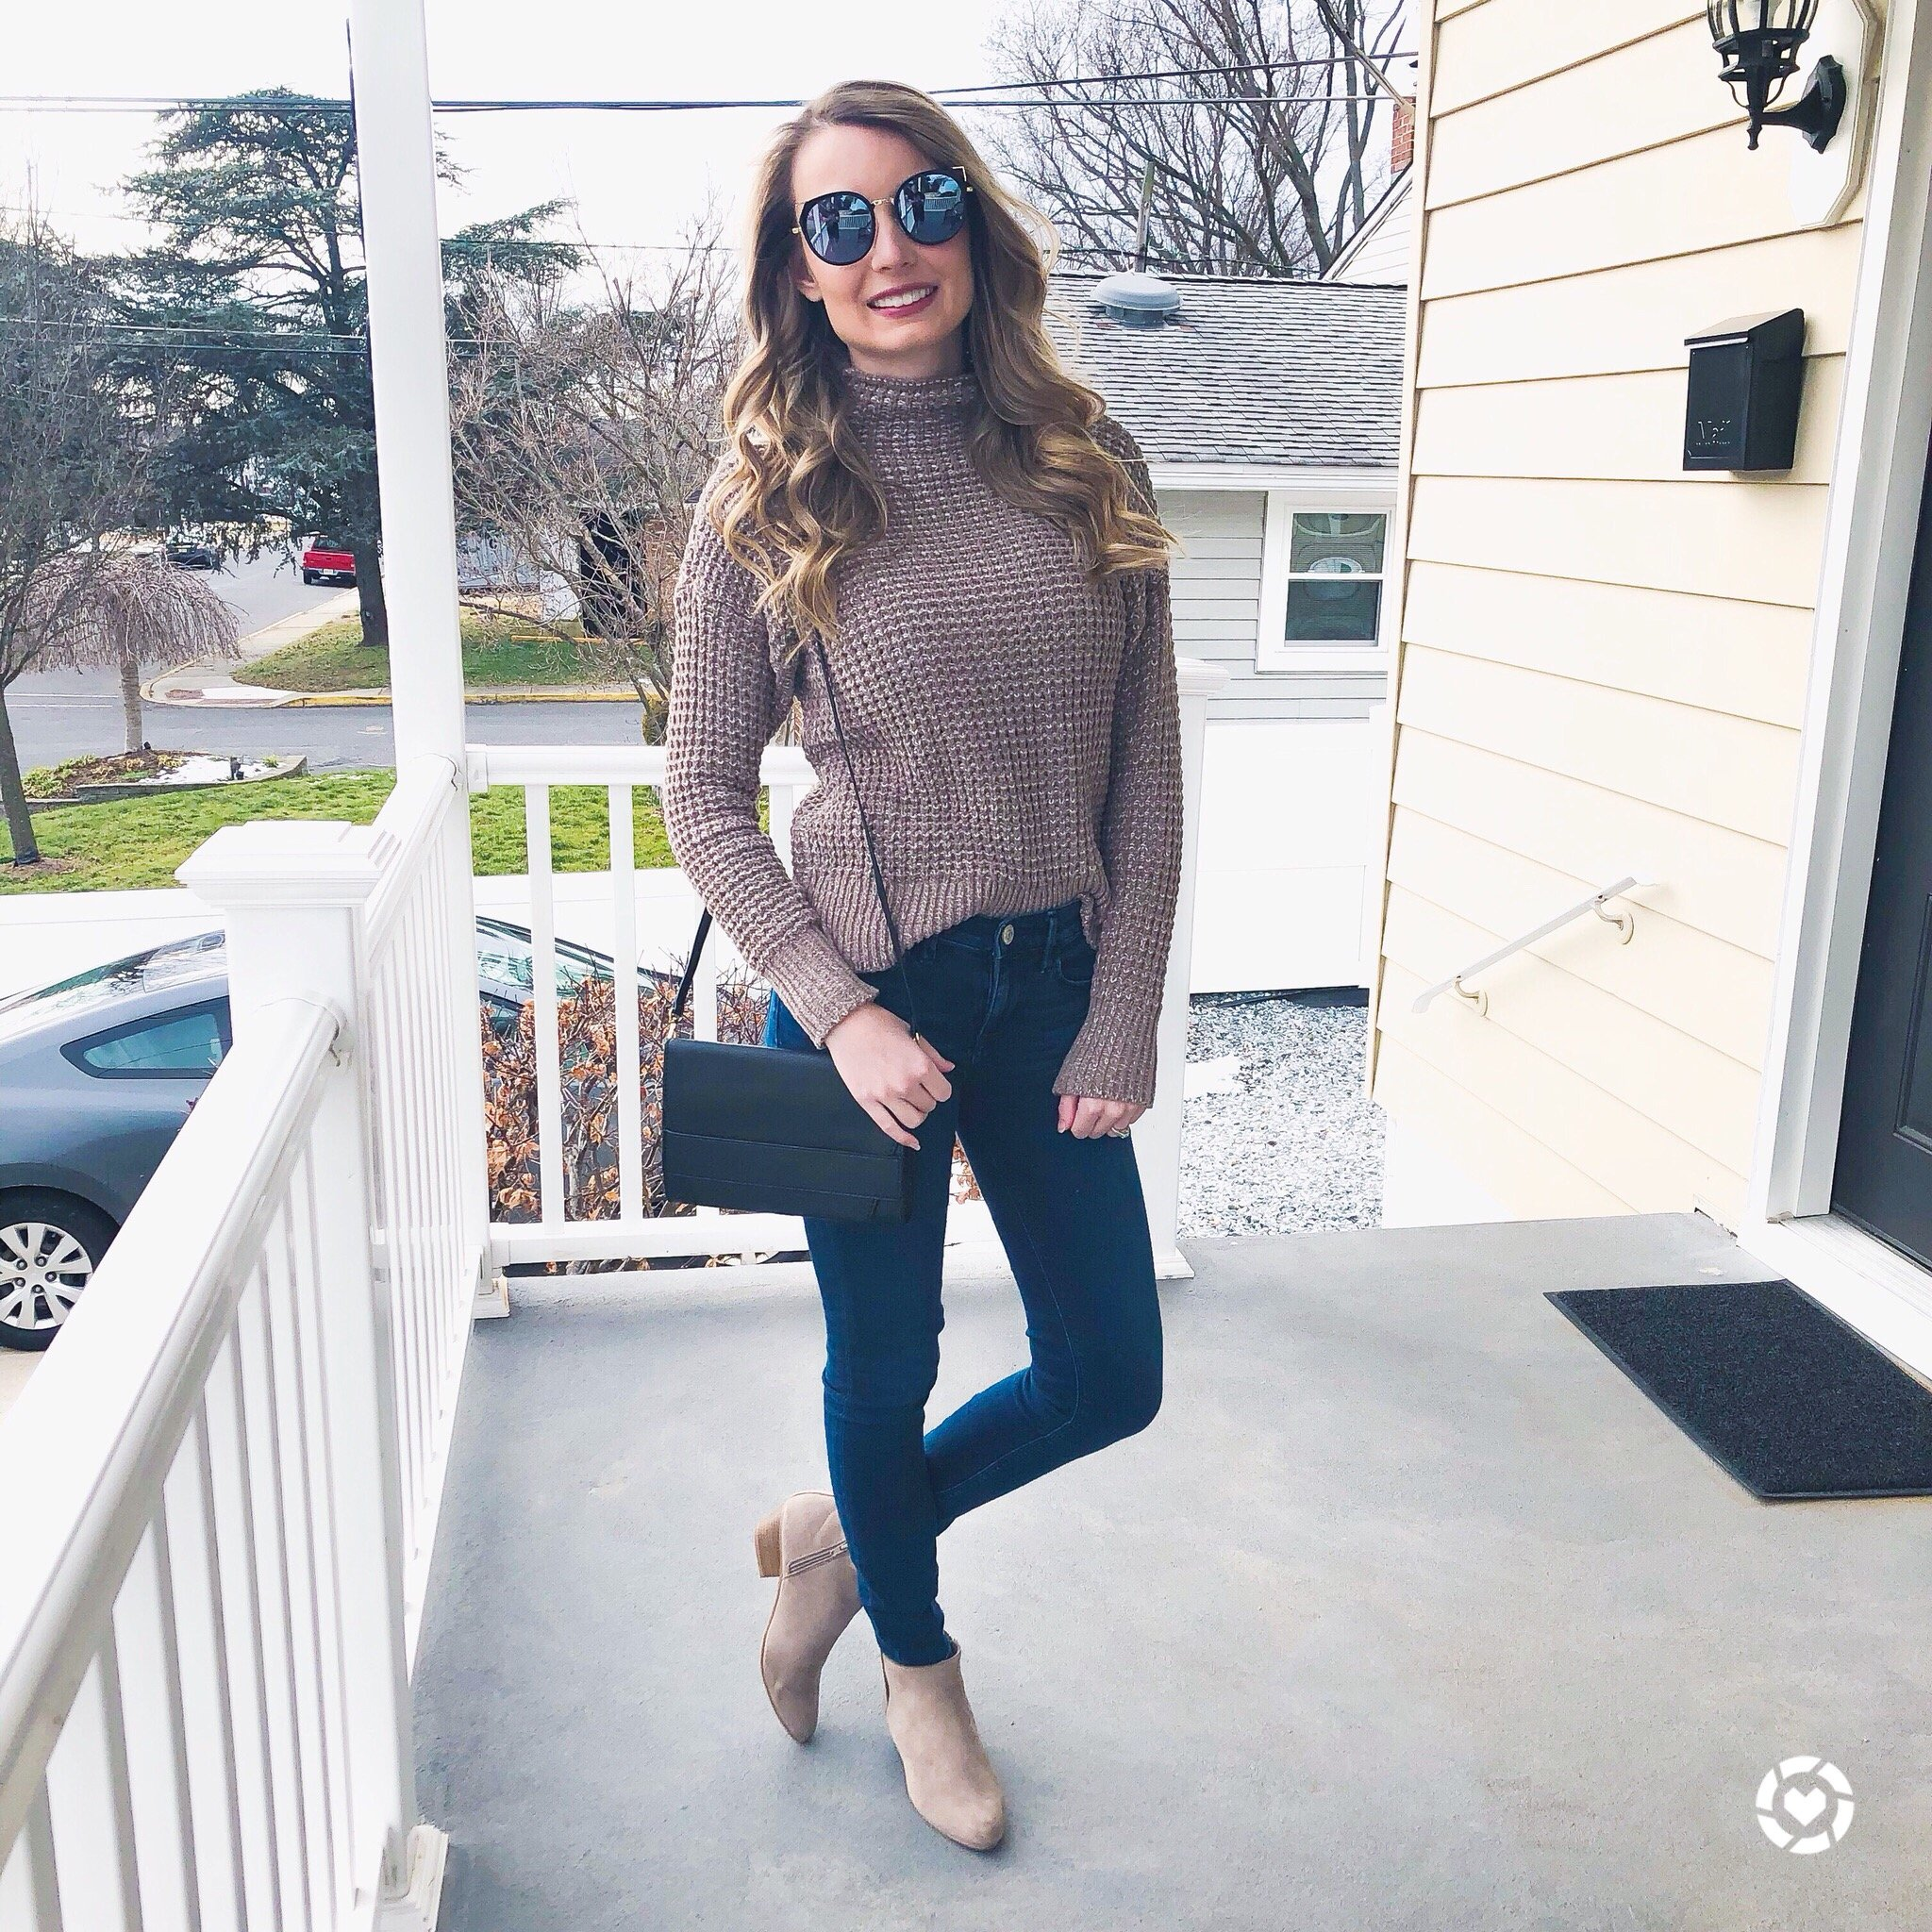 Shop my outfits on LikeToKnow.It!